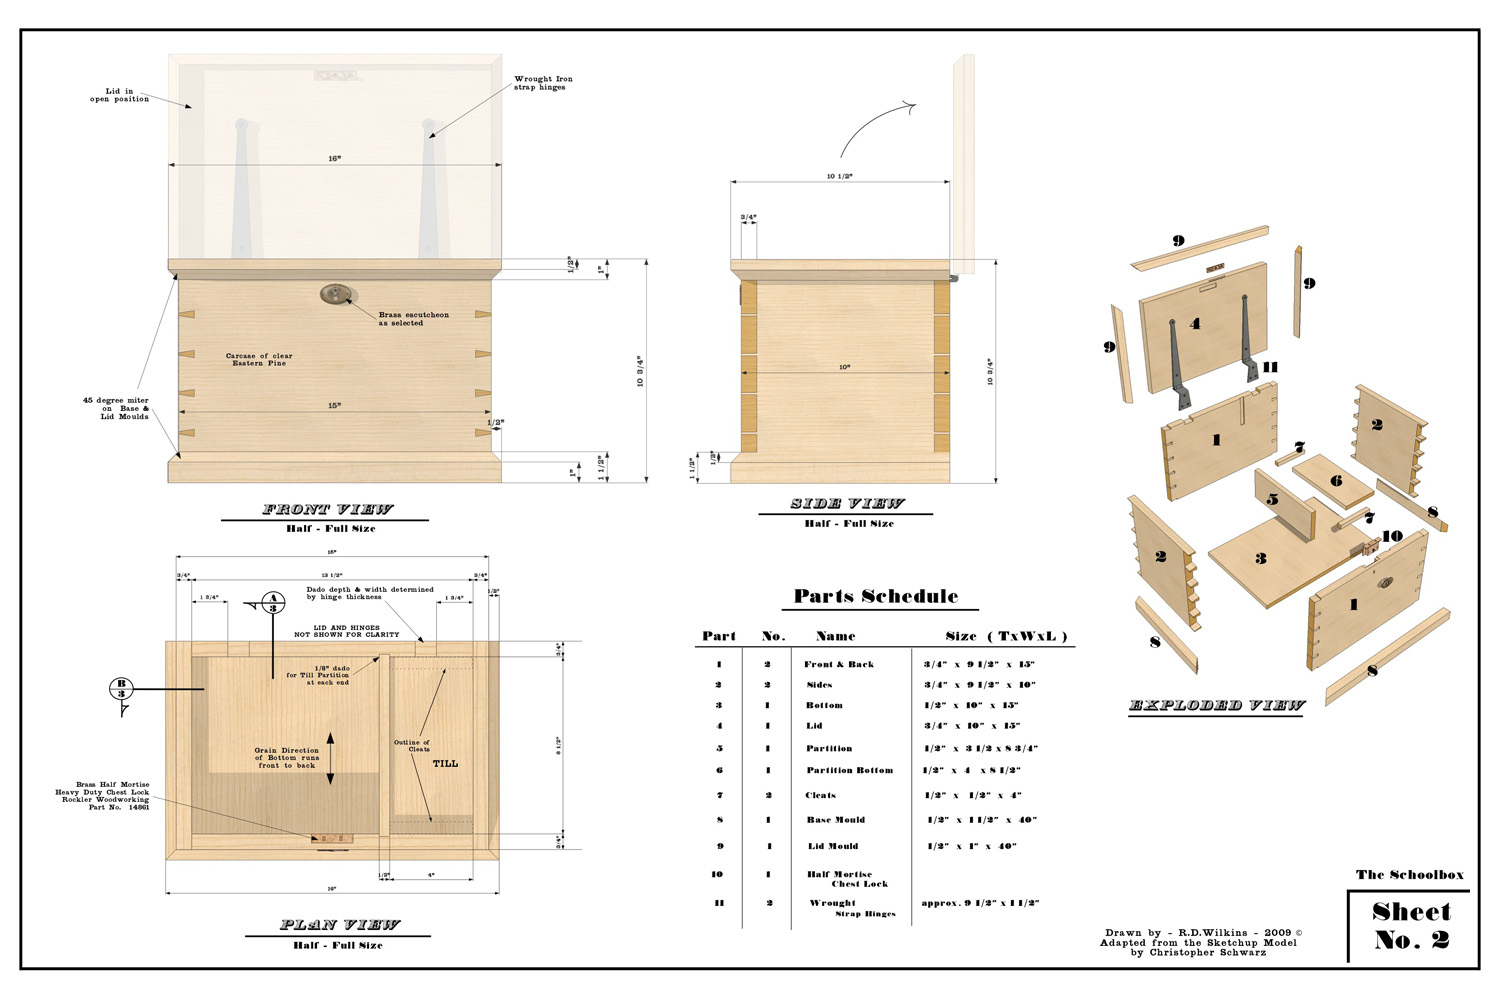 Retired SketchUp Blog: SketchUp Pro Case Study: Randy Wilkins